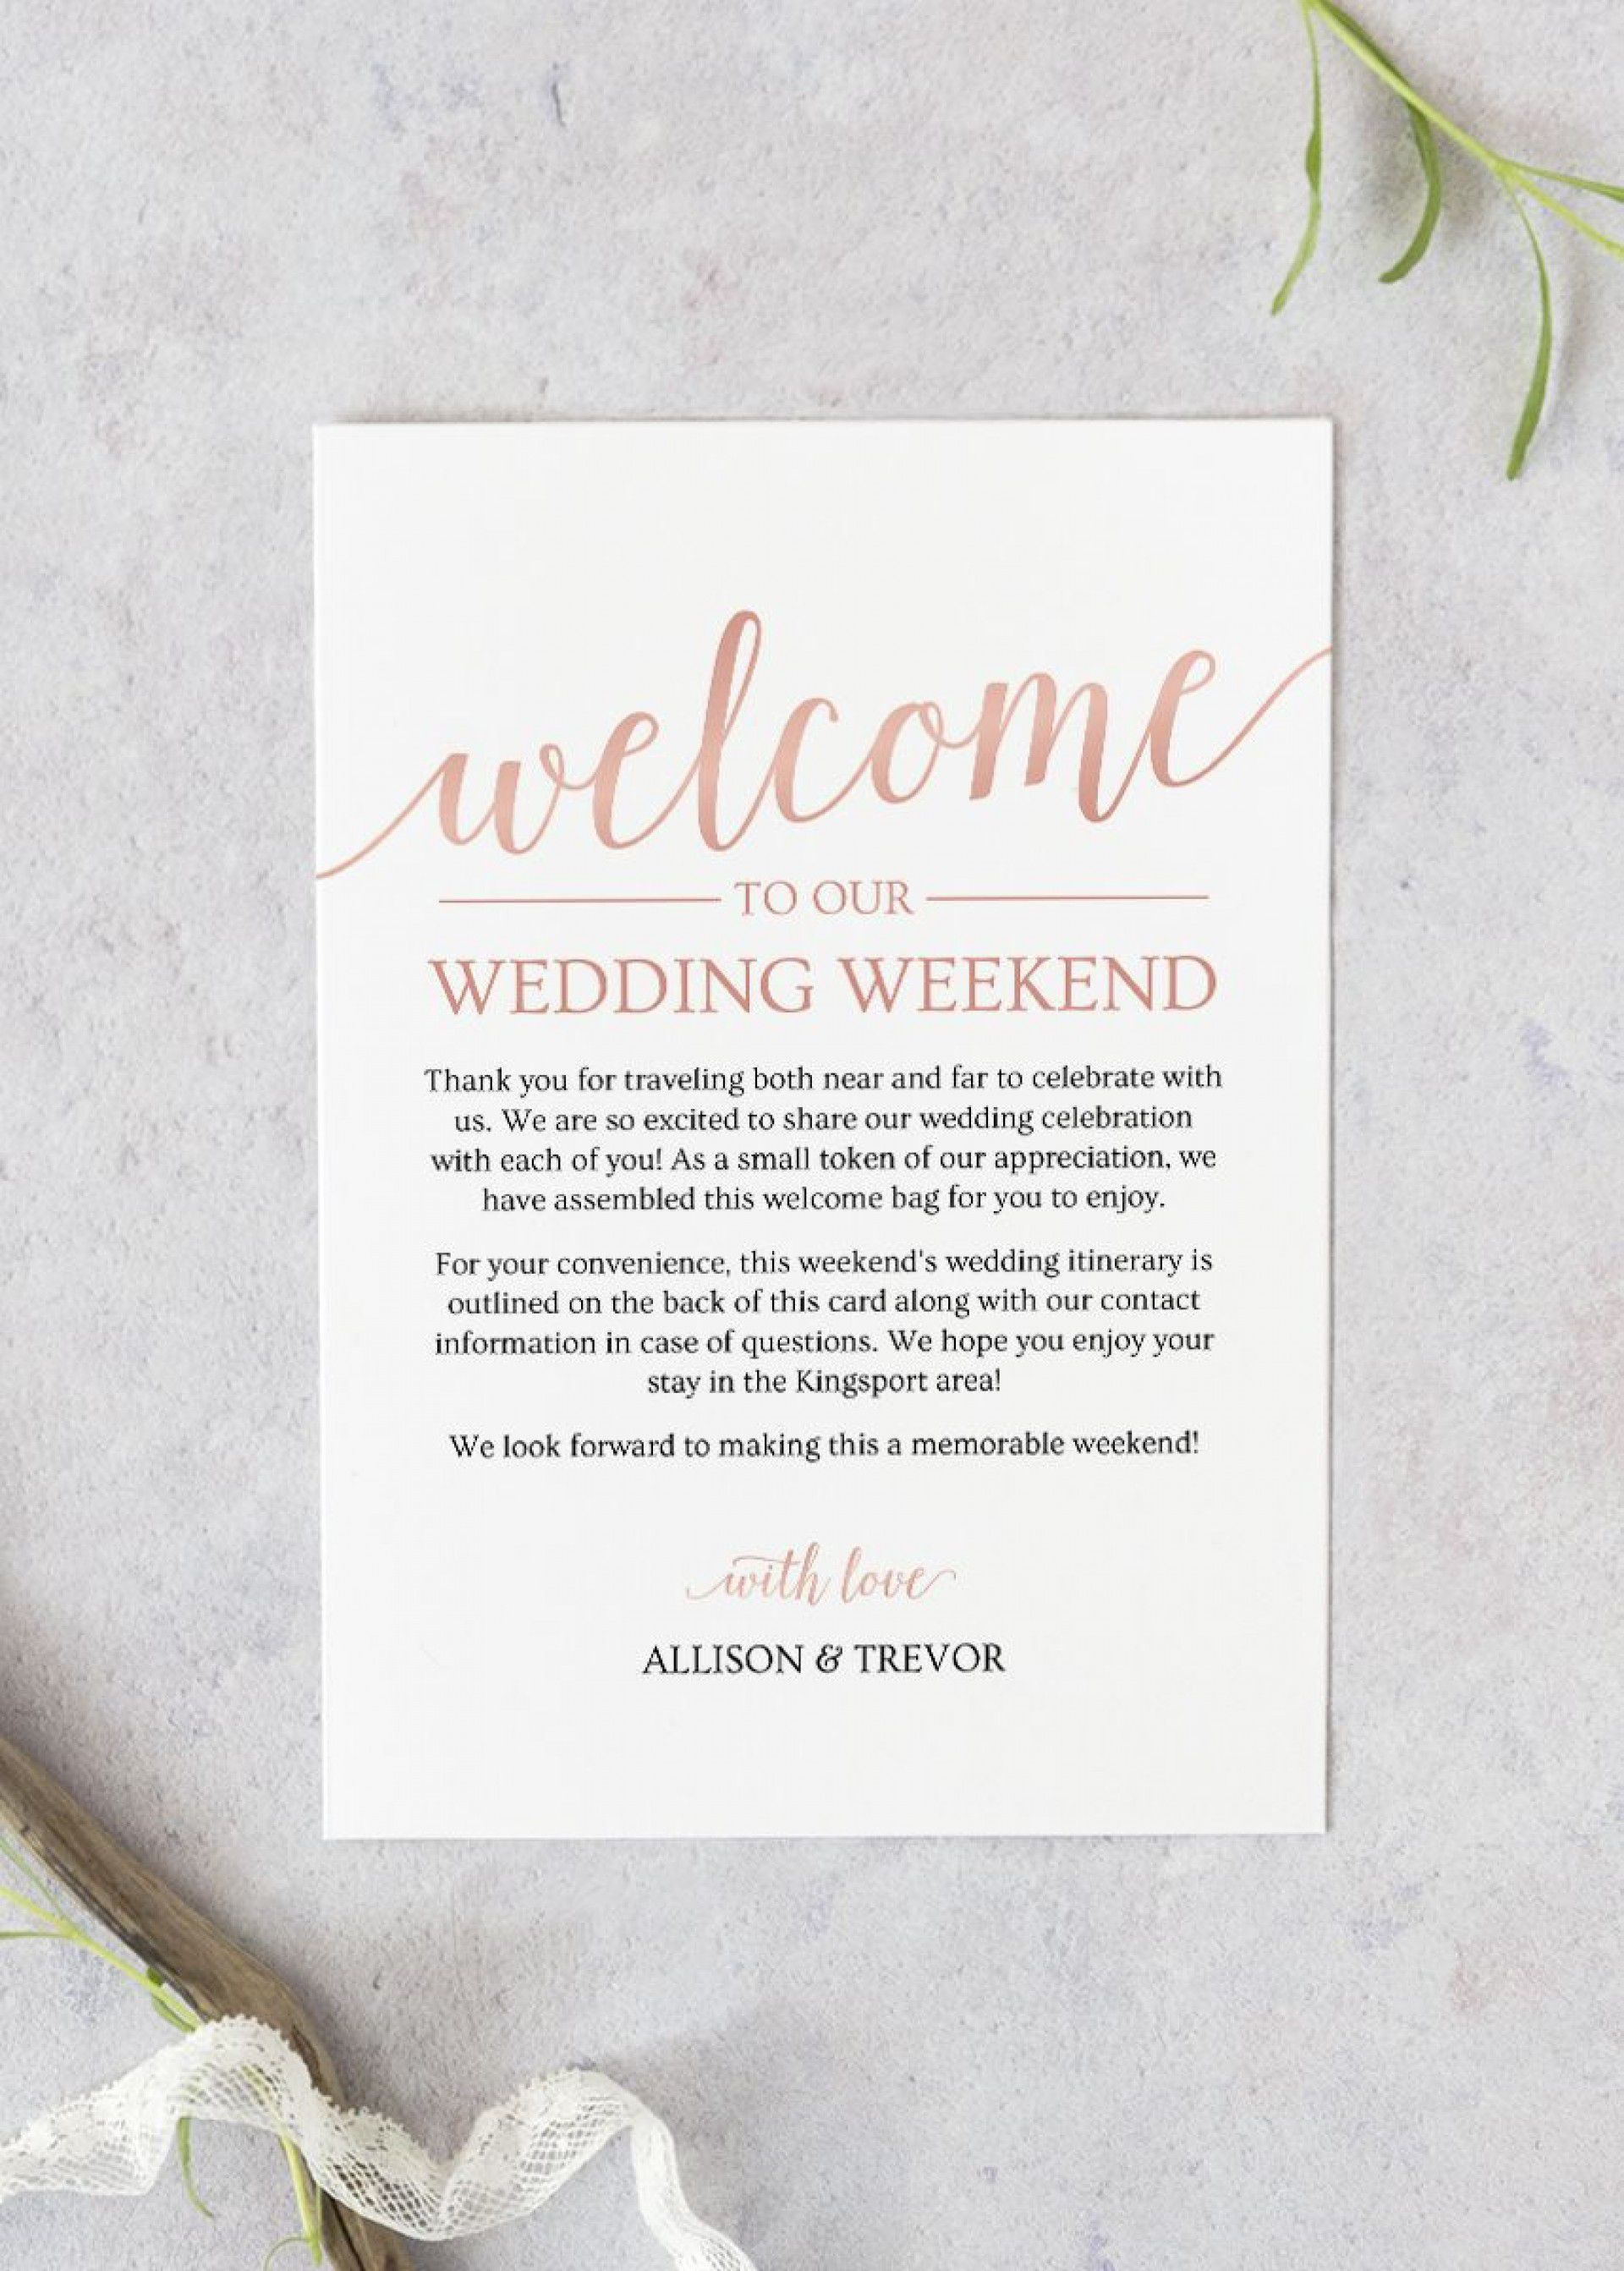 000 Striking Cruise Wedding Welcome Letter Template High Definition Full